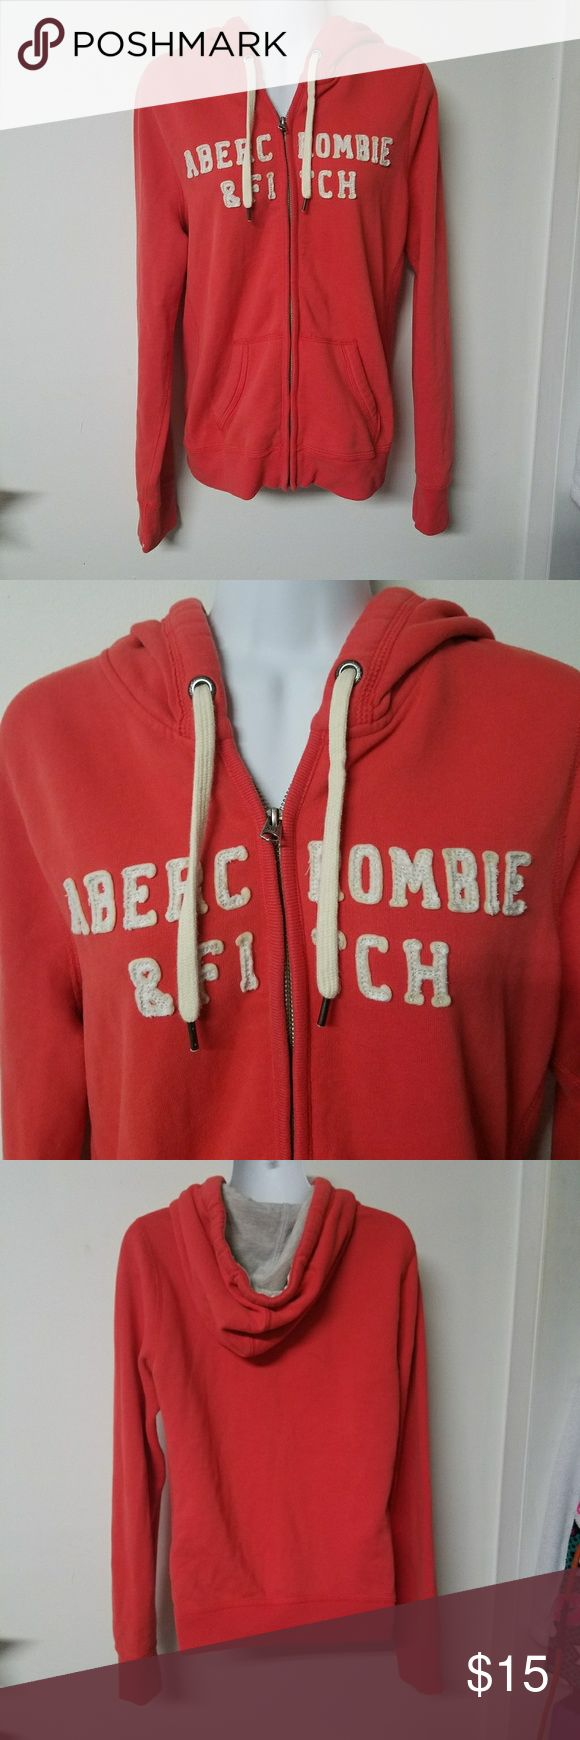 Abercrombie and Fitch coral hoodie juniors large Up for sale is an Abercrombie and Fitch coral pink hoodie. It has cream colored lettering and strings. The size is a juniors large. It is in great condition with lots of wear left!! Love their hoodies because they are so comfy and warm! Just don't wear this anymore.   Thanks for looking and ask any questions.   Open to offers!💗 Abercrombie & Fitch Sweaters